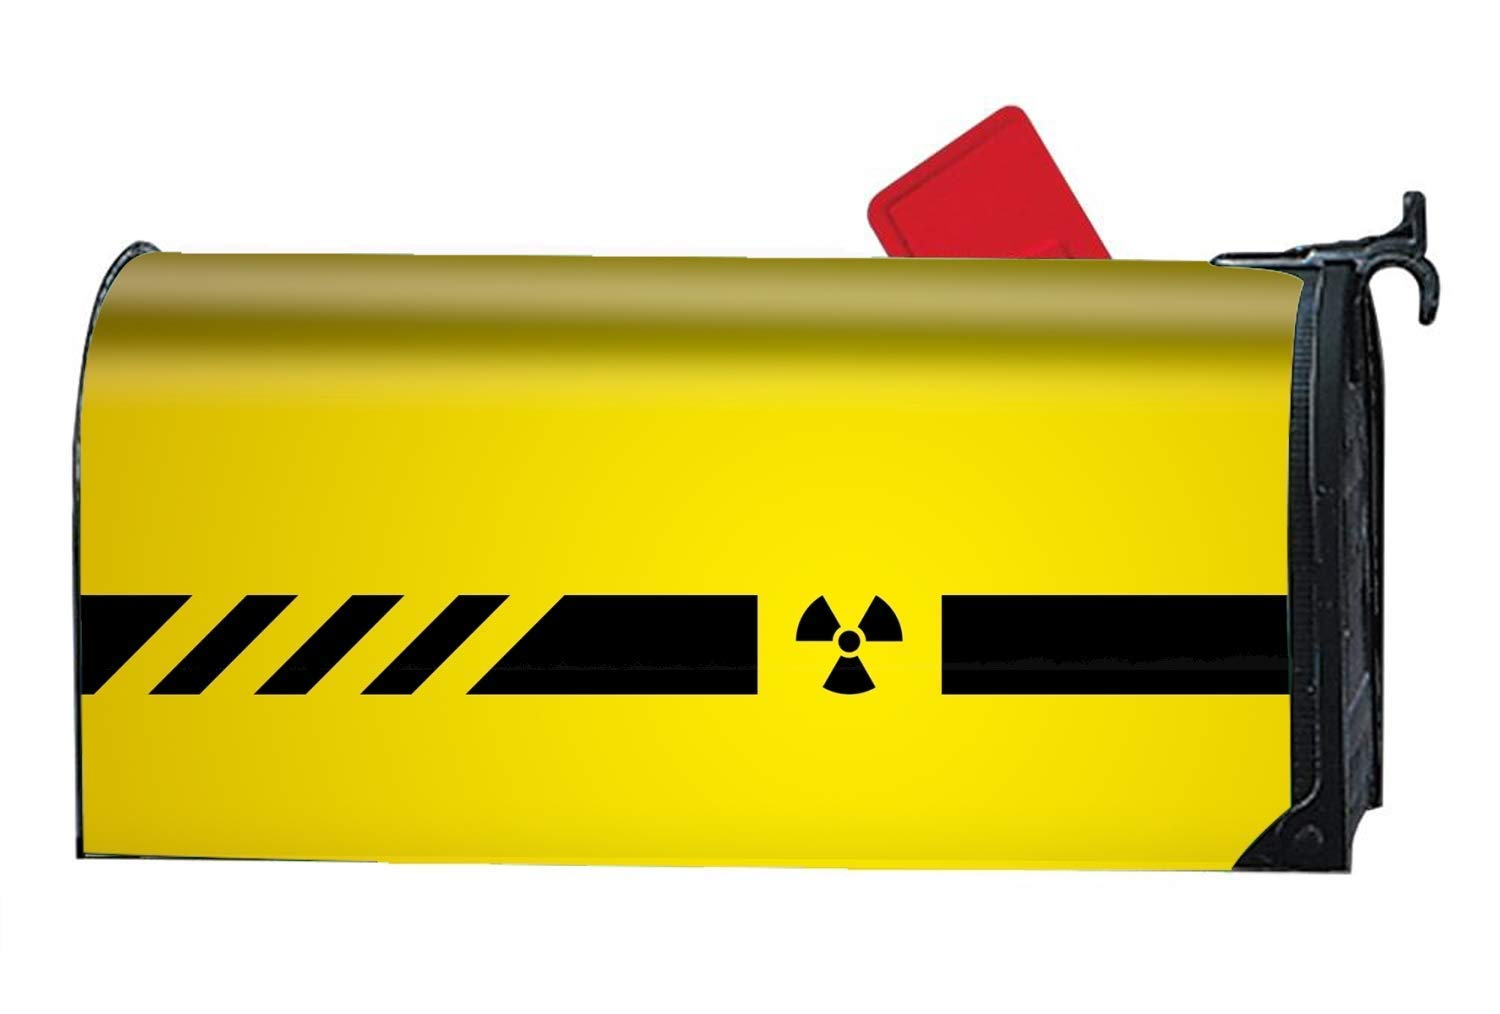 YongSD Nuclear Power 21 x 9inches Standard Size Mailbox Cover